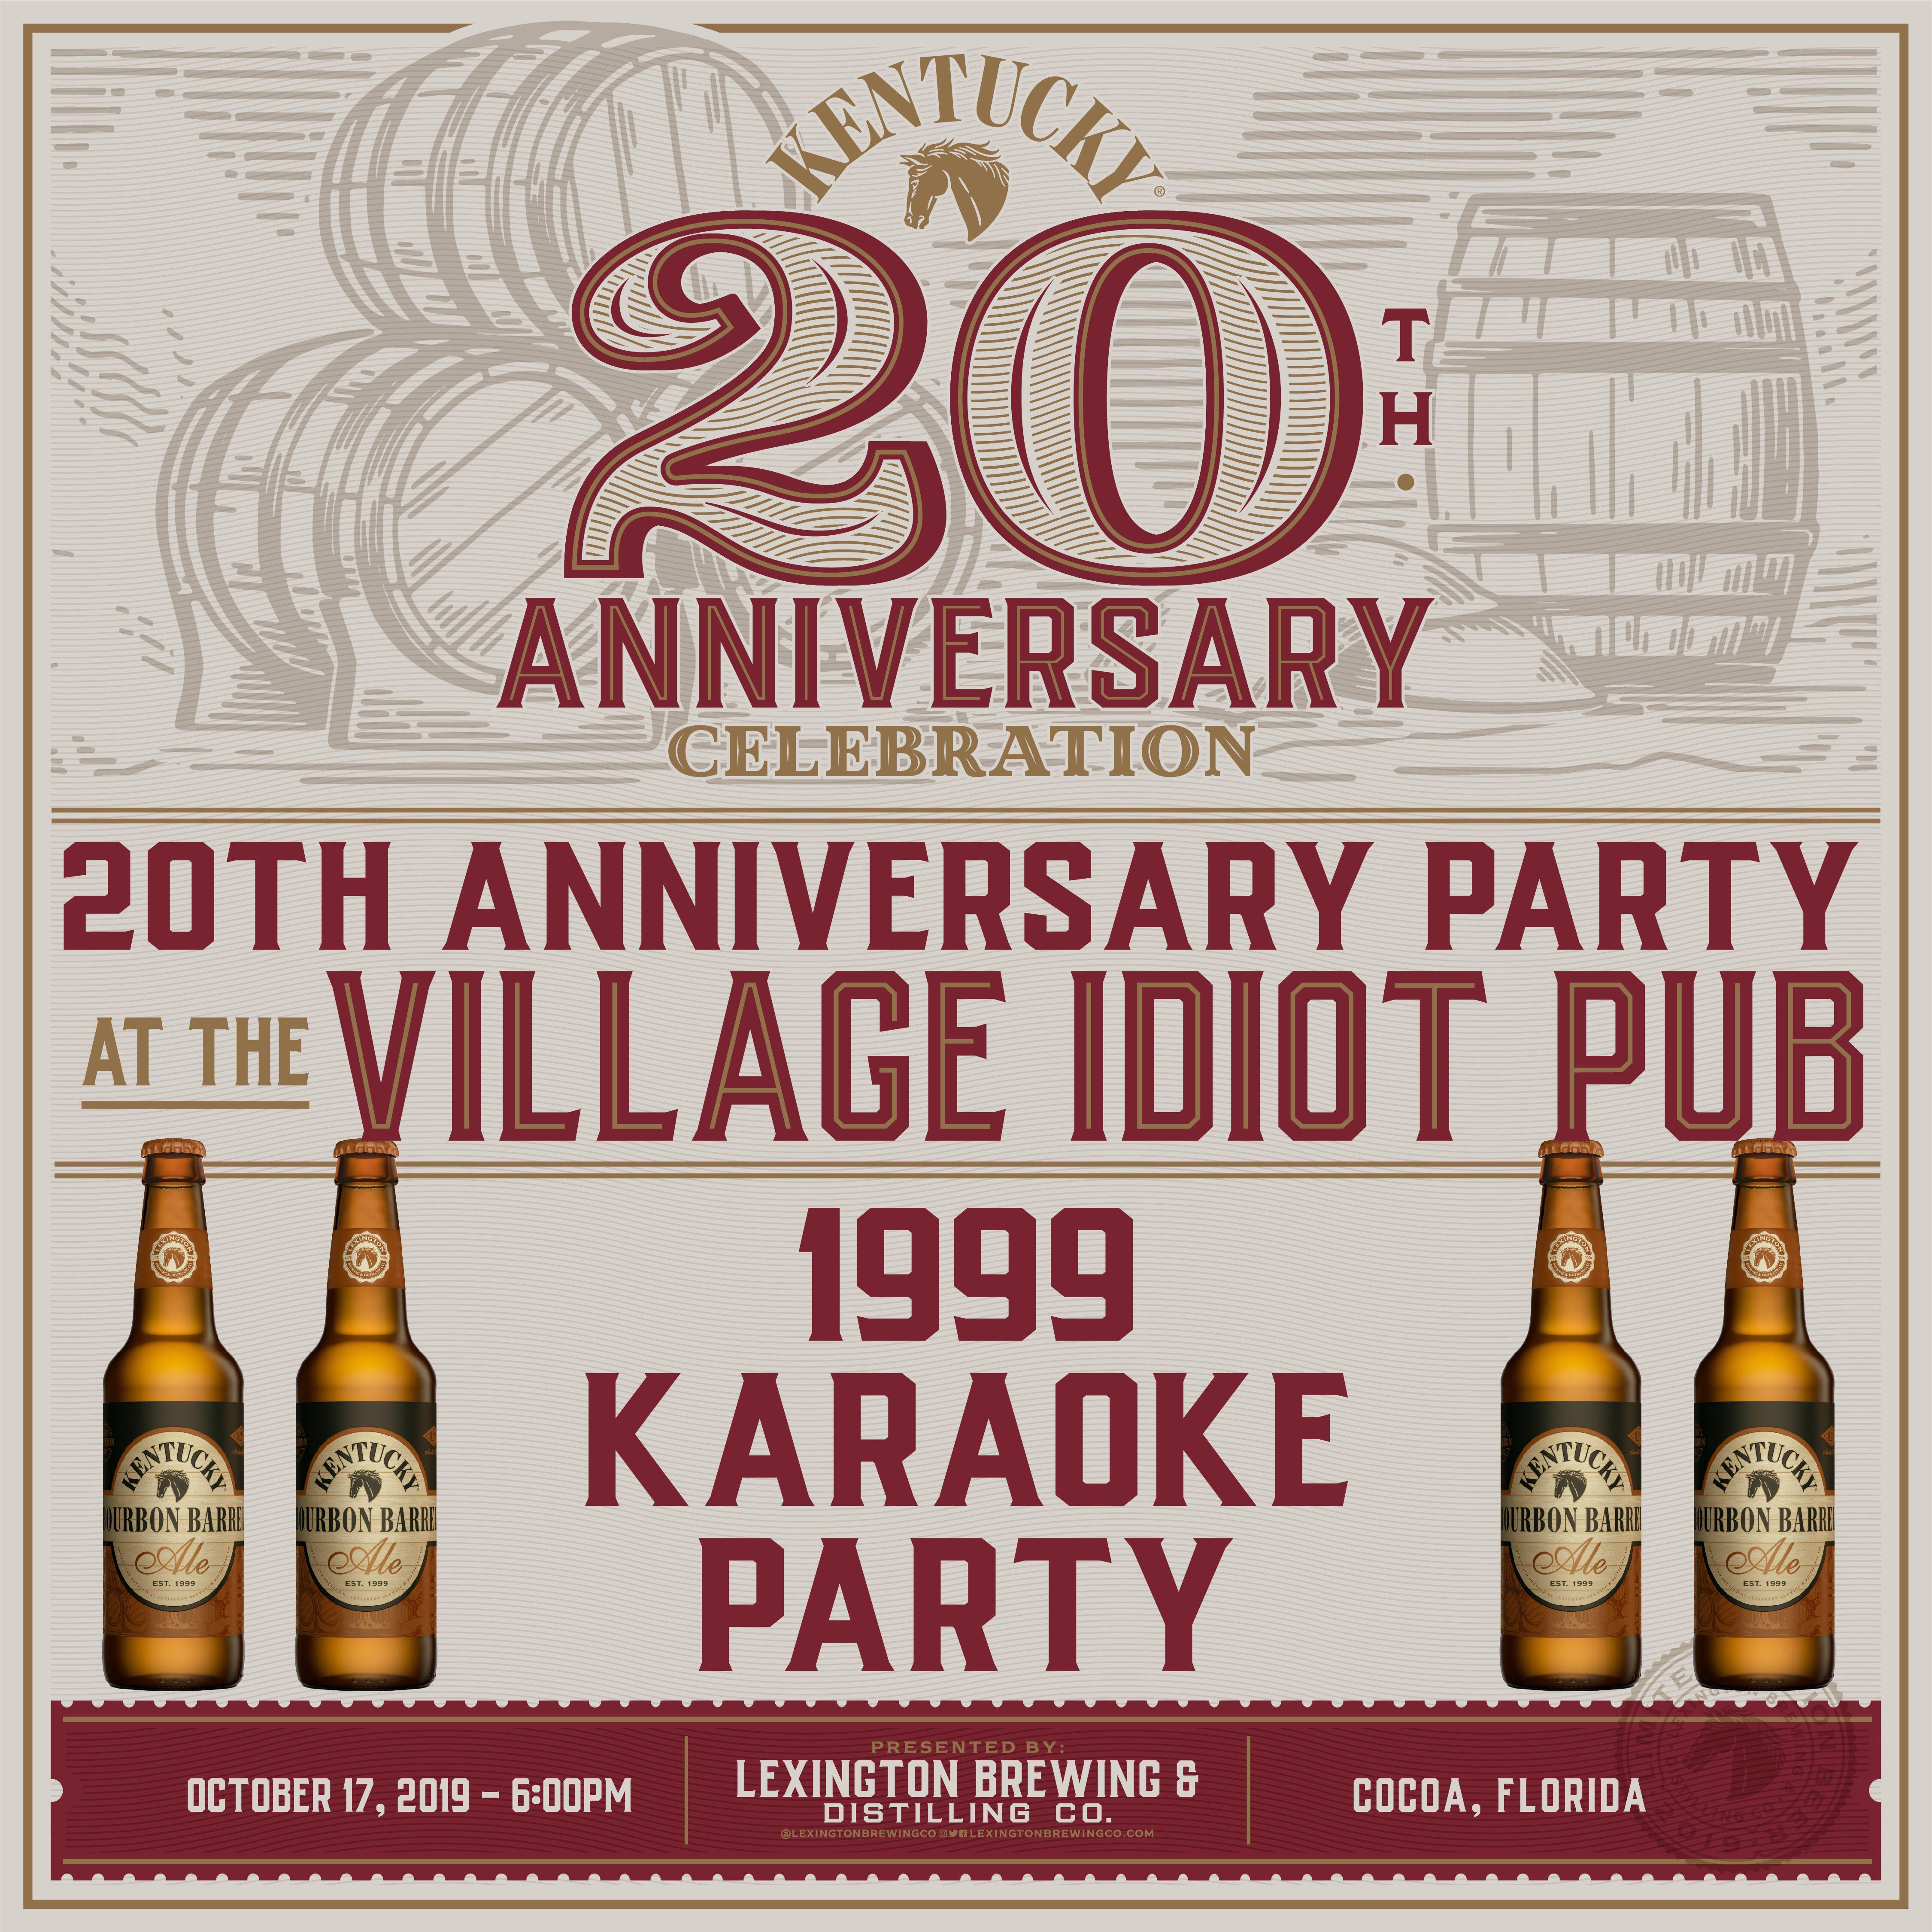 Kentucky Lexington Distillery and Brewing Company 20th Anniversary Party with Karaoke at the Village Idiot Pub